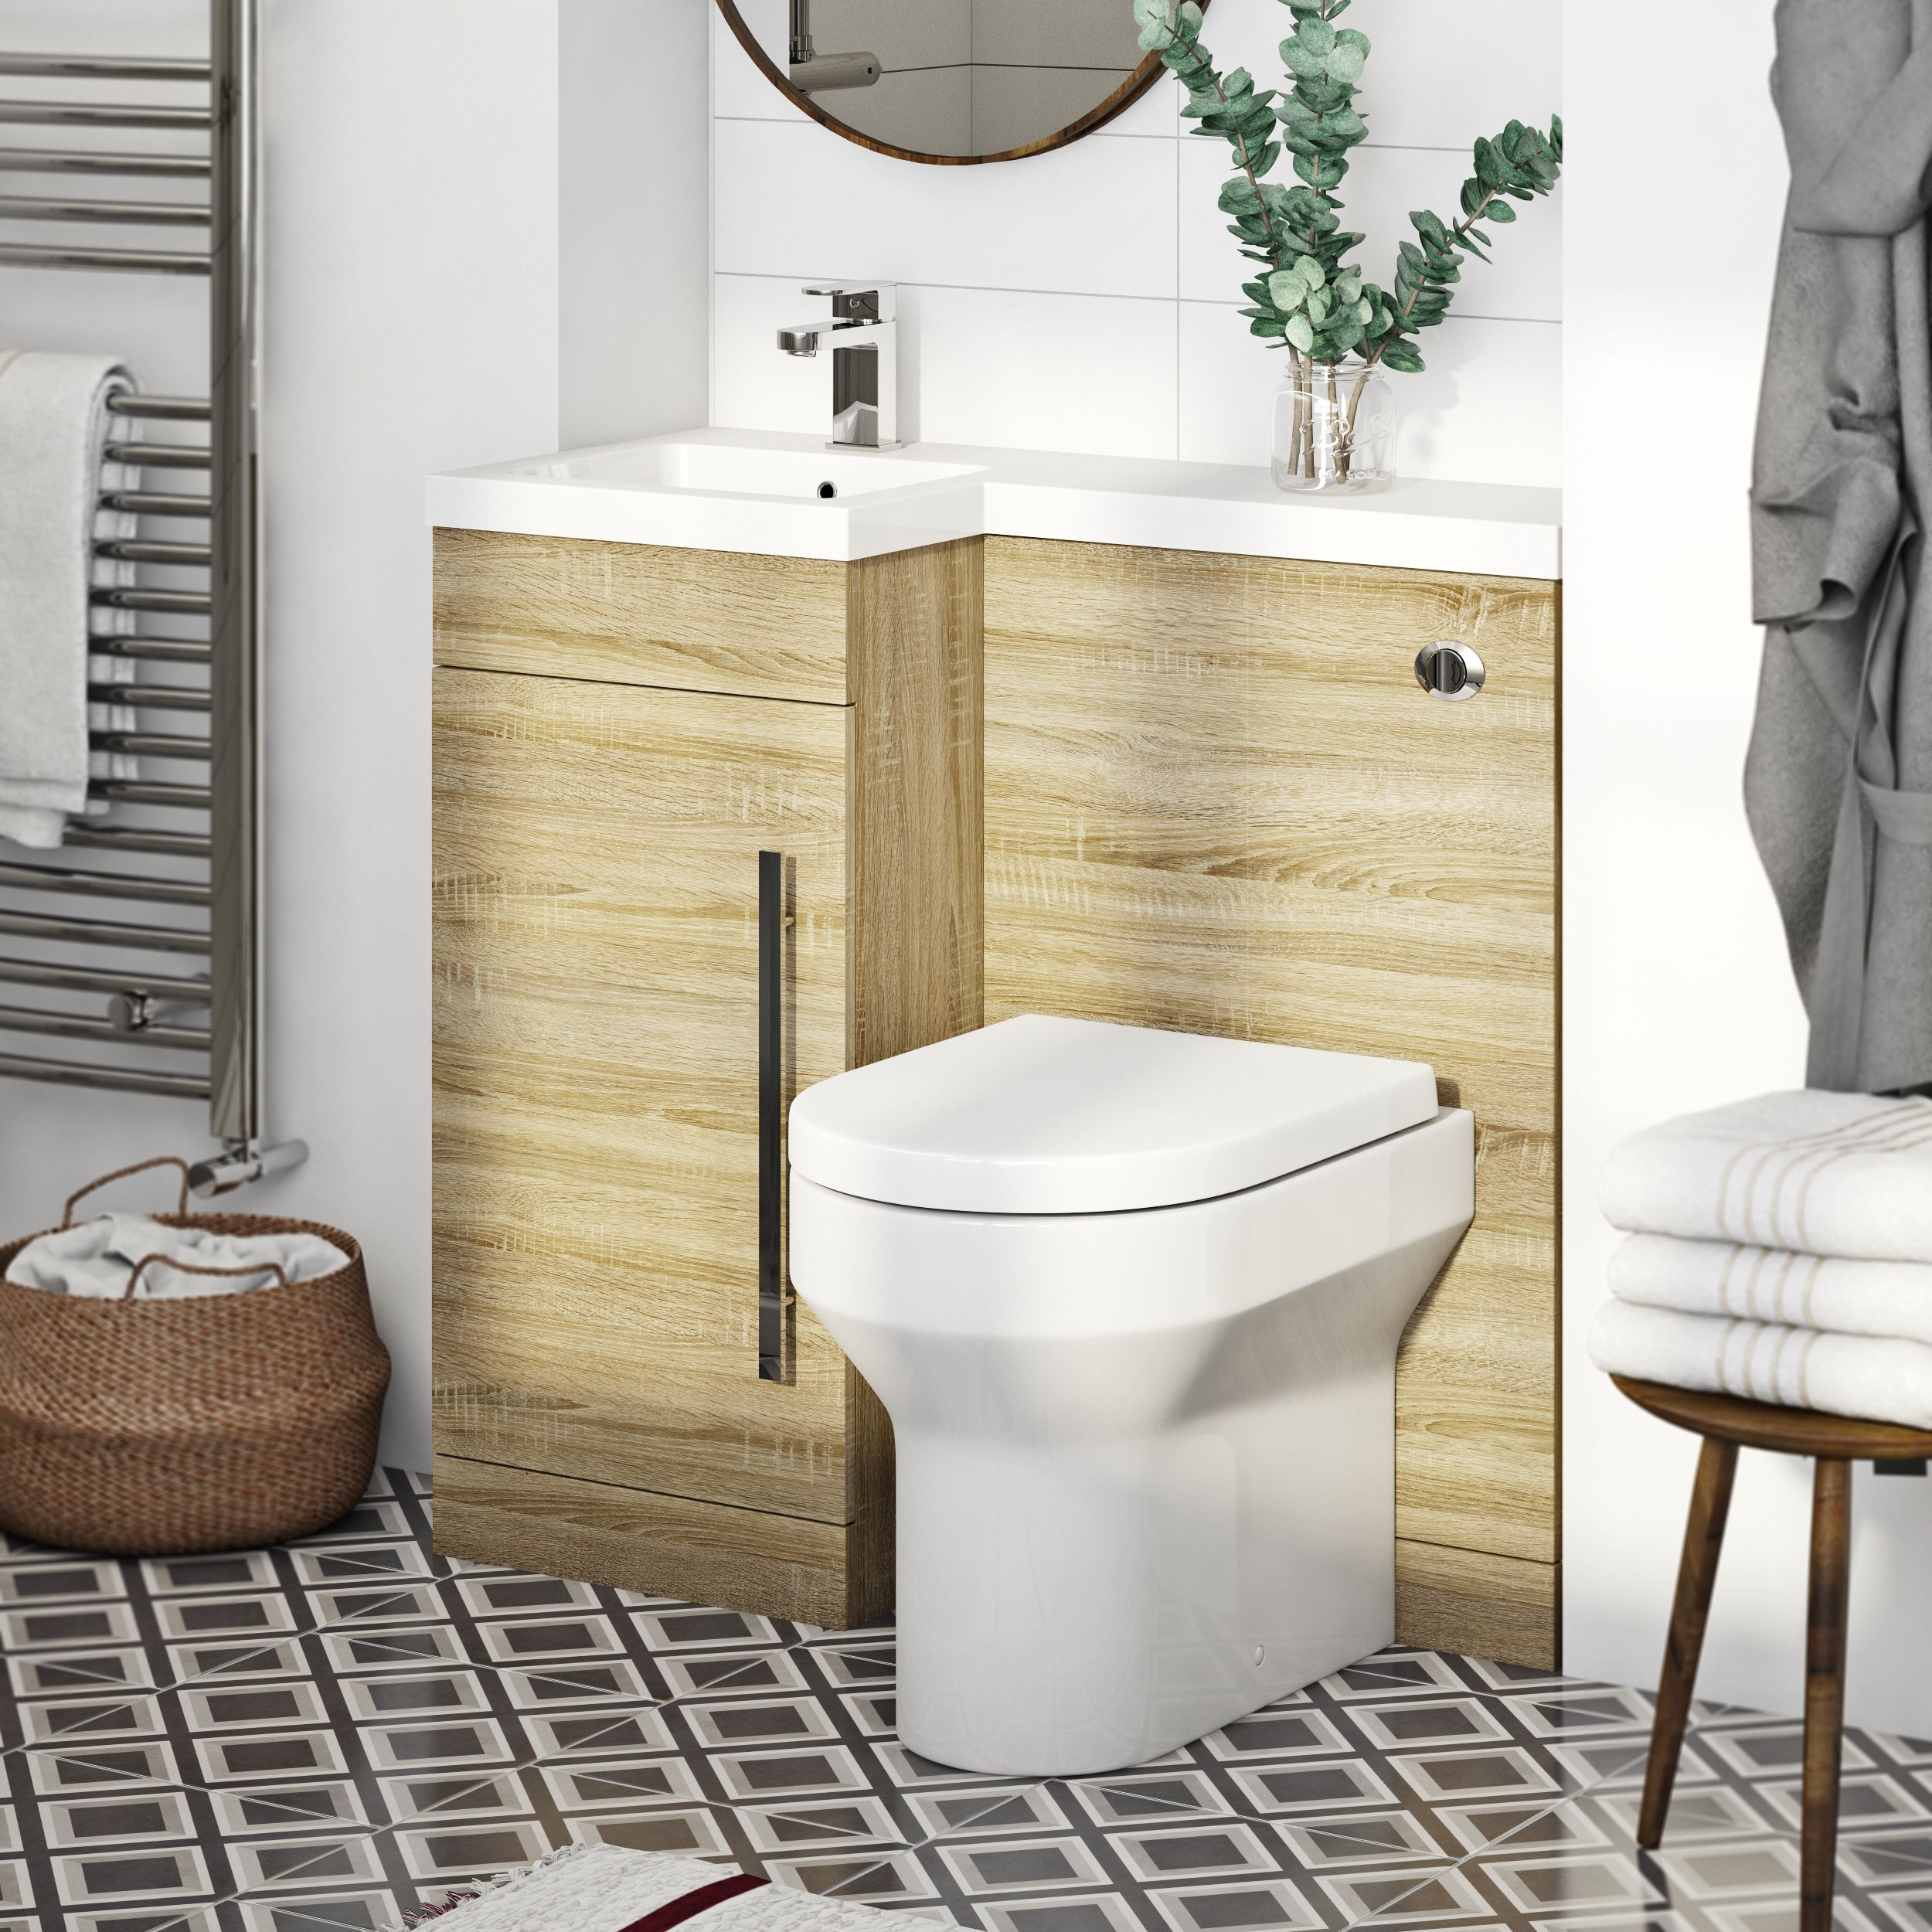 Small bathroom or cloakroom causing you space issues? Style it your ...